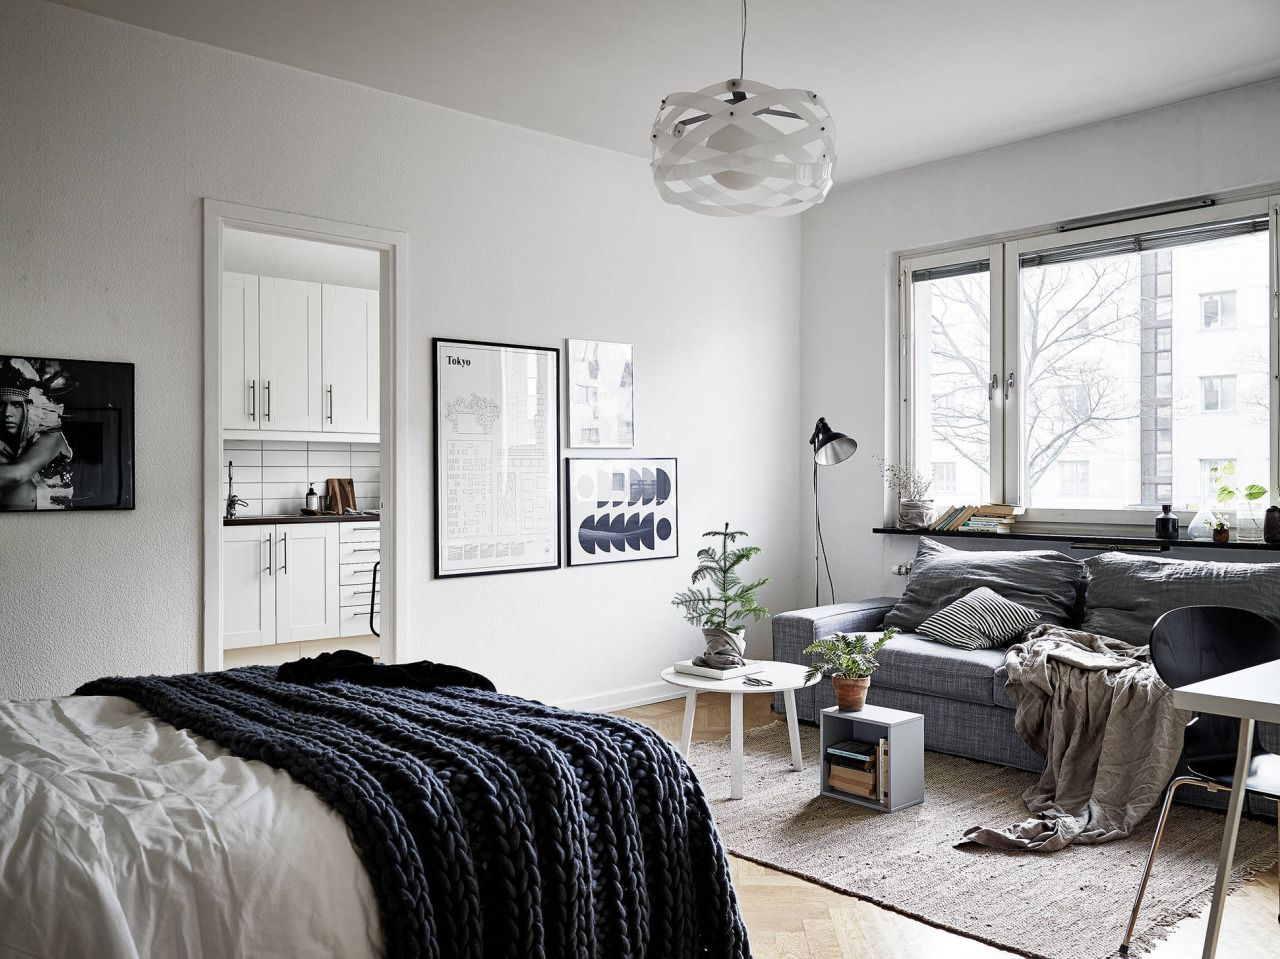 Best Simple Decor Studio Apartment Are You Looking For 400 x 300